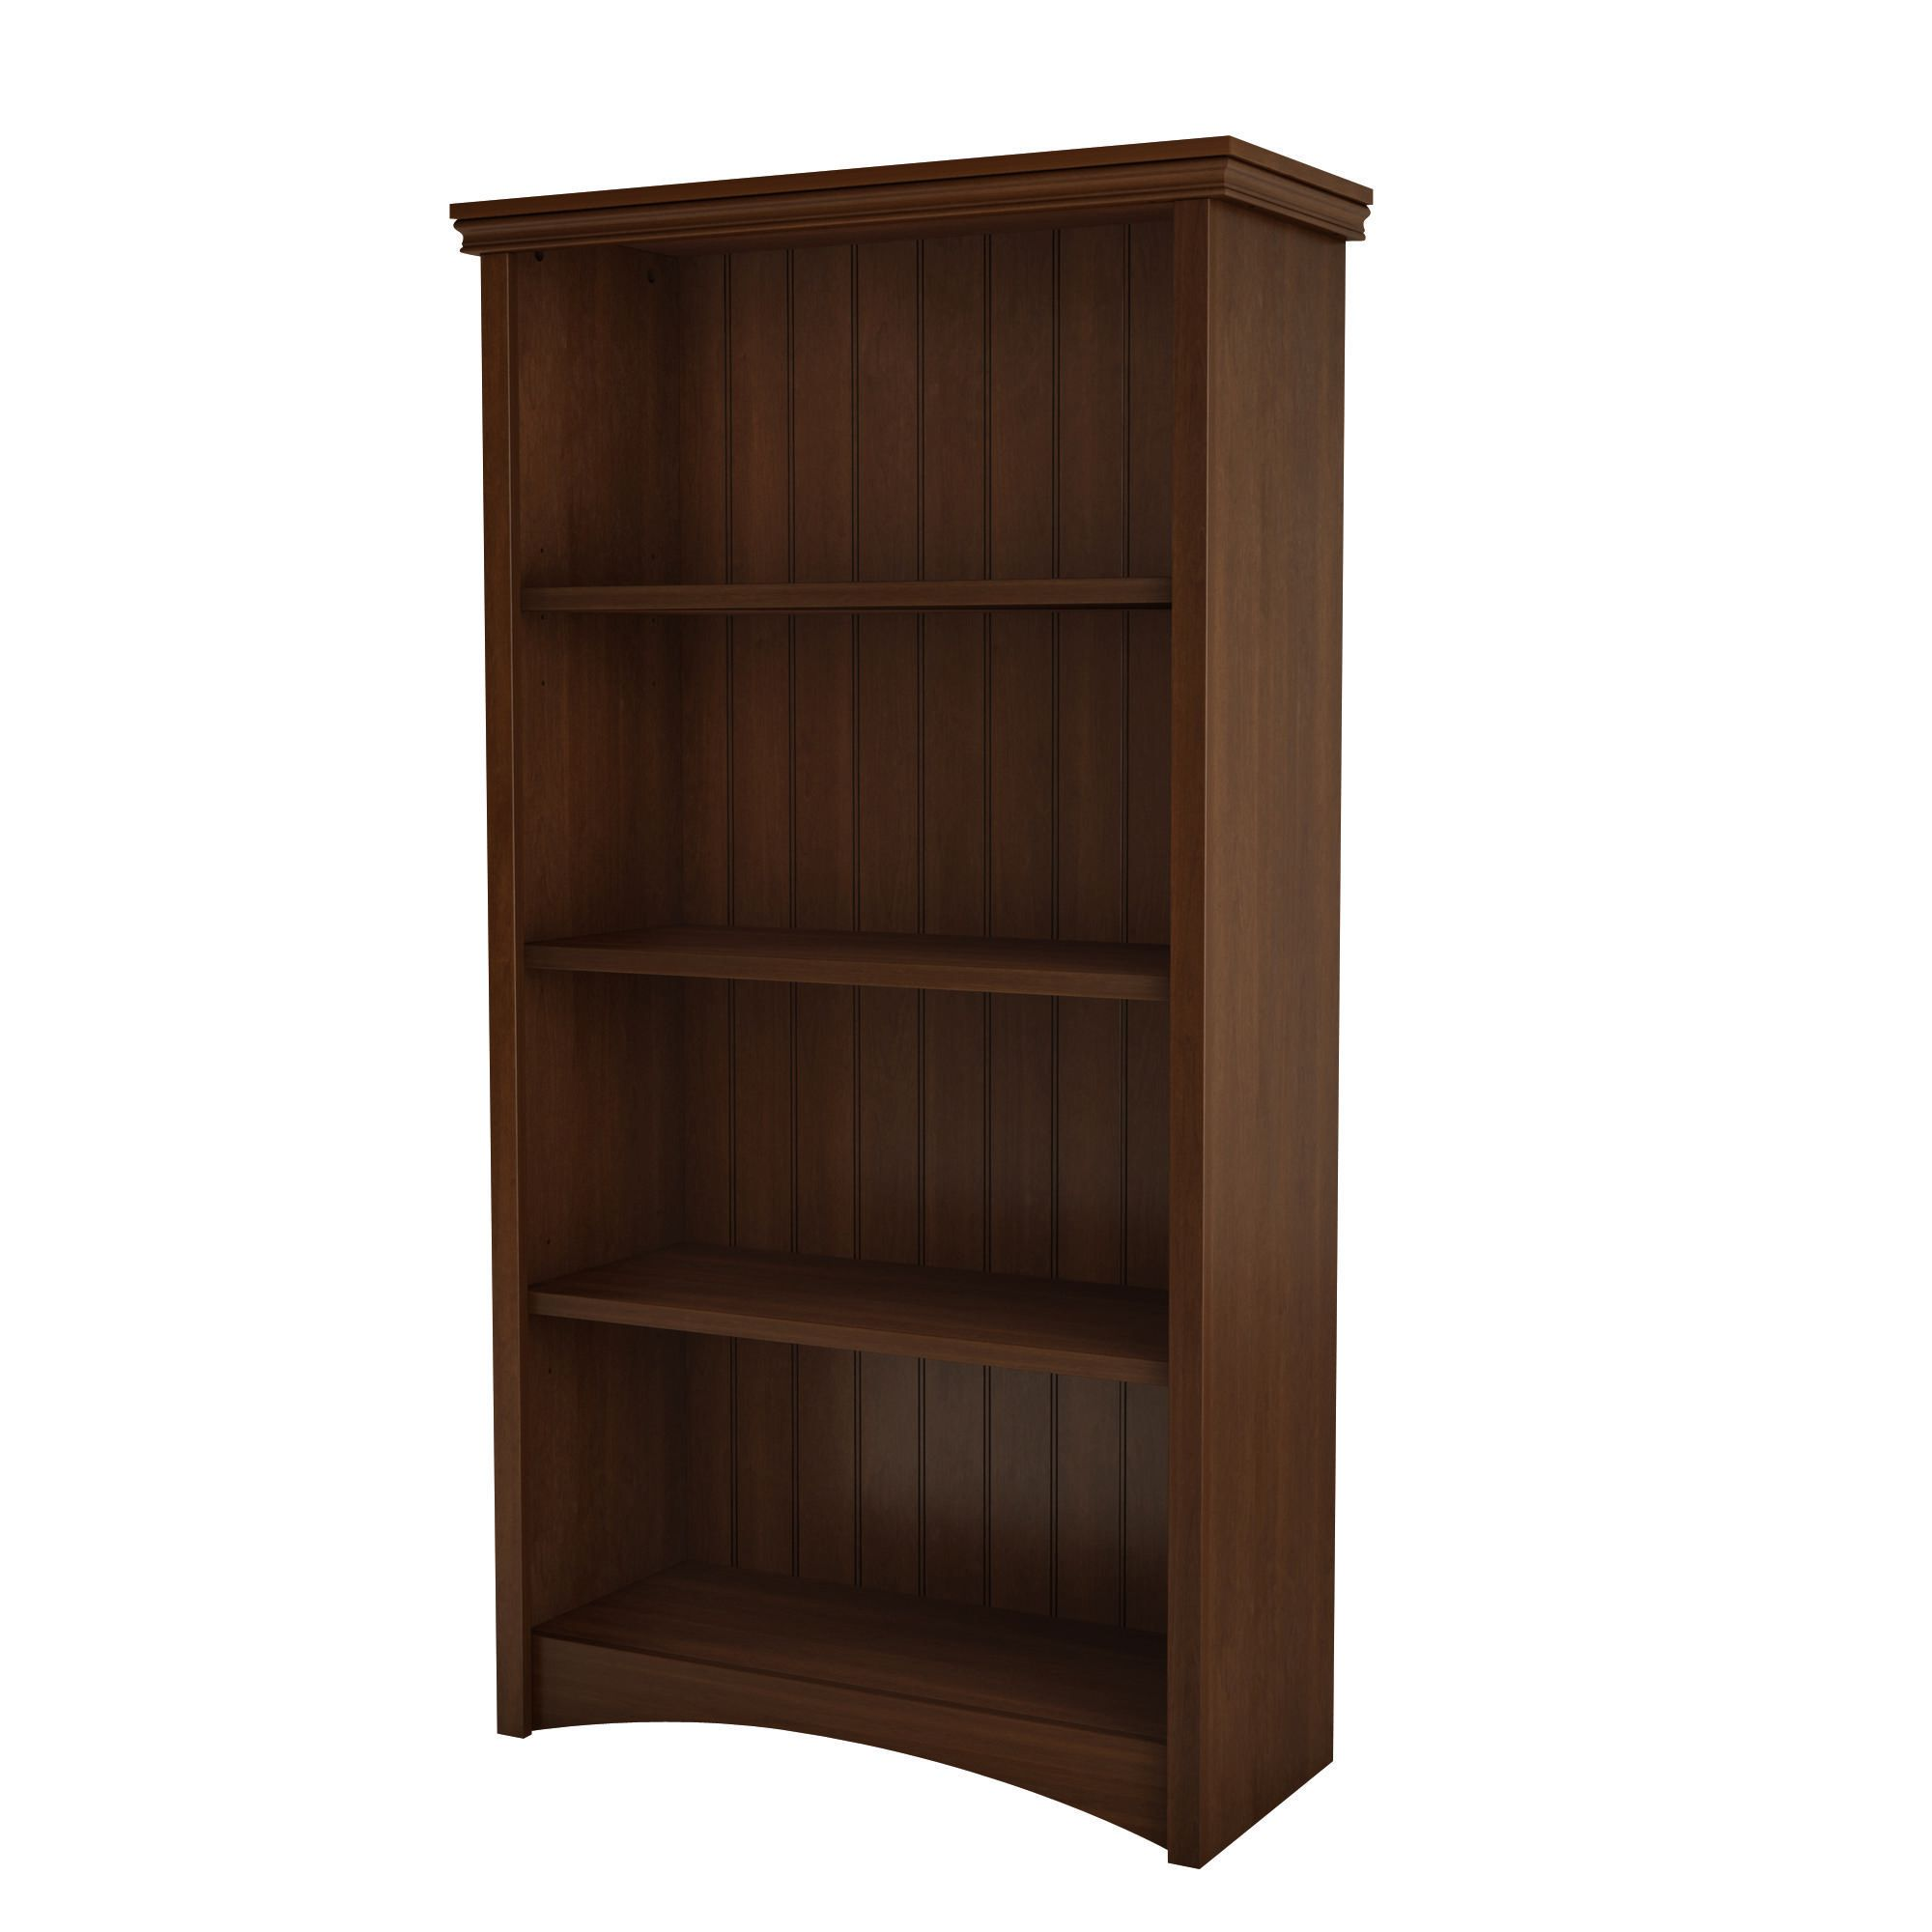 left bookcases hollowcore facing winter monarch or length specialties bookcase right desk